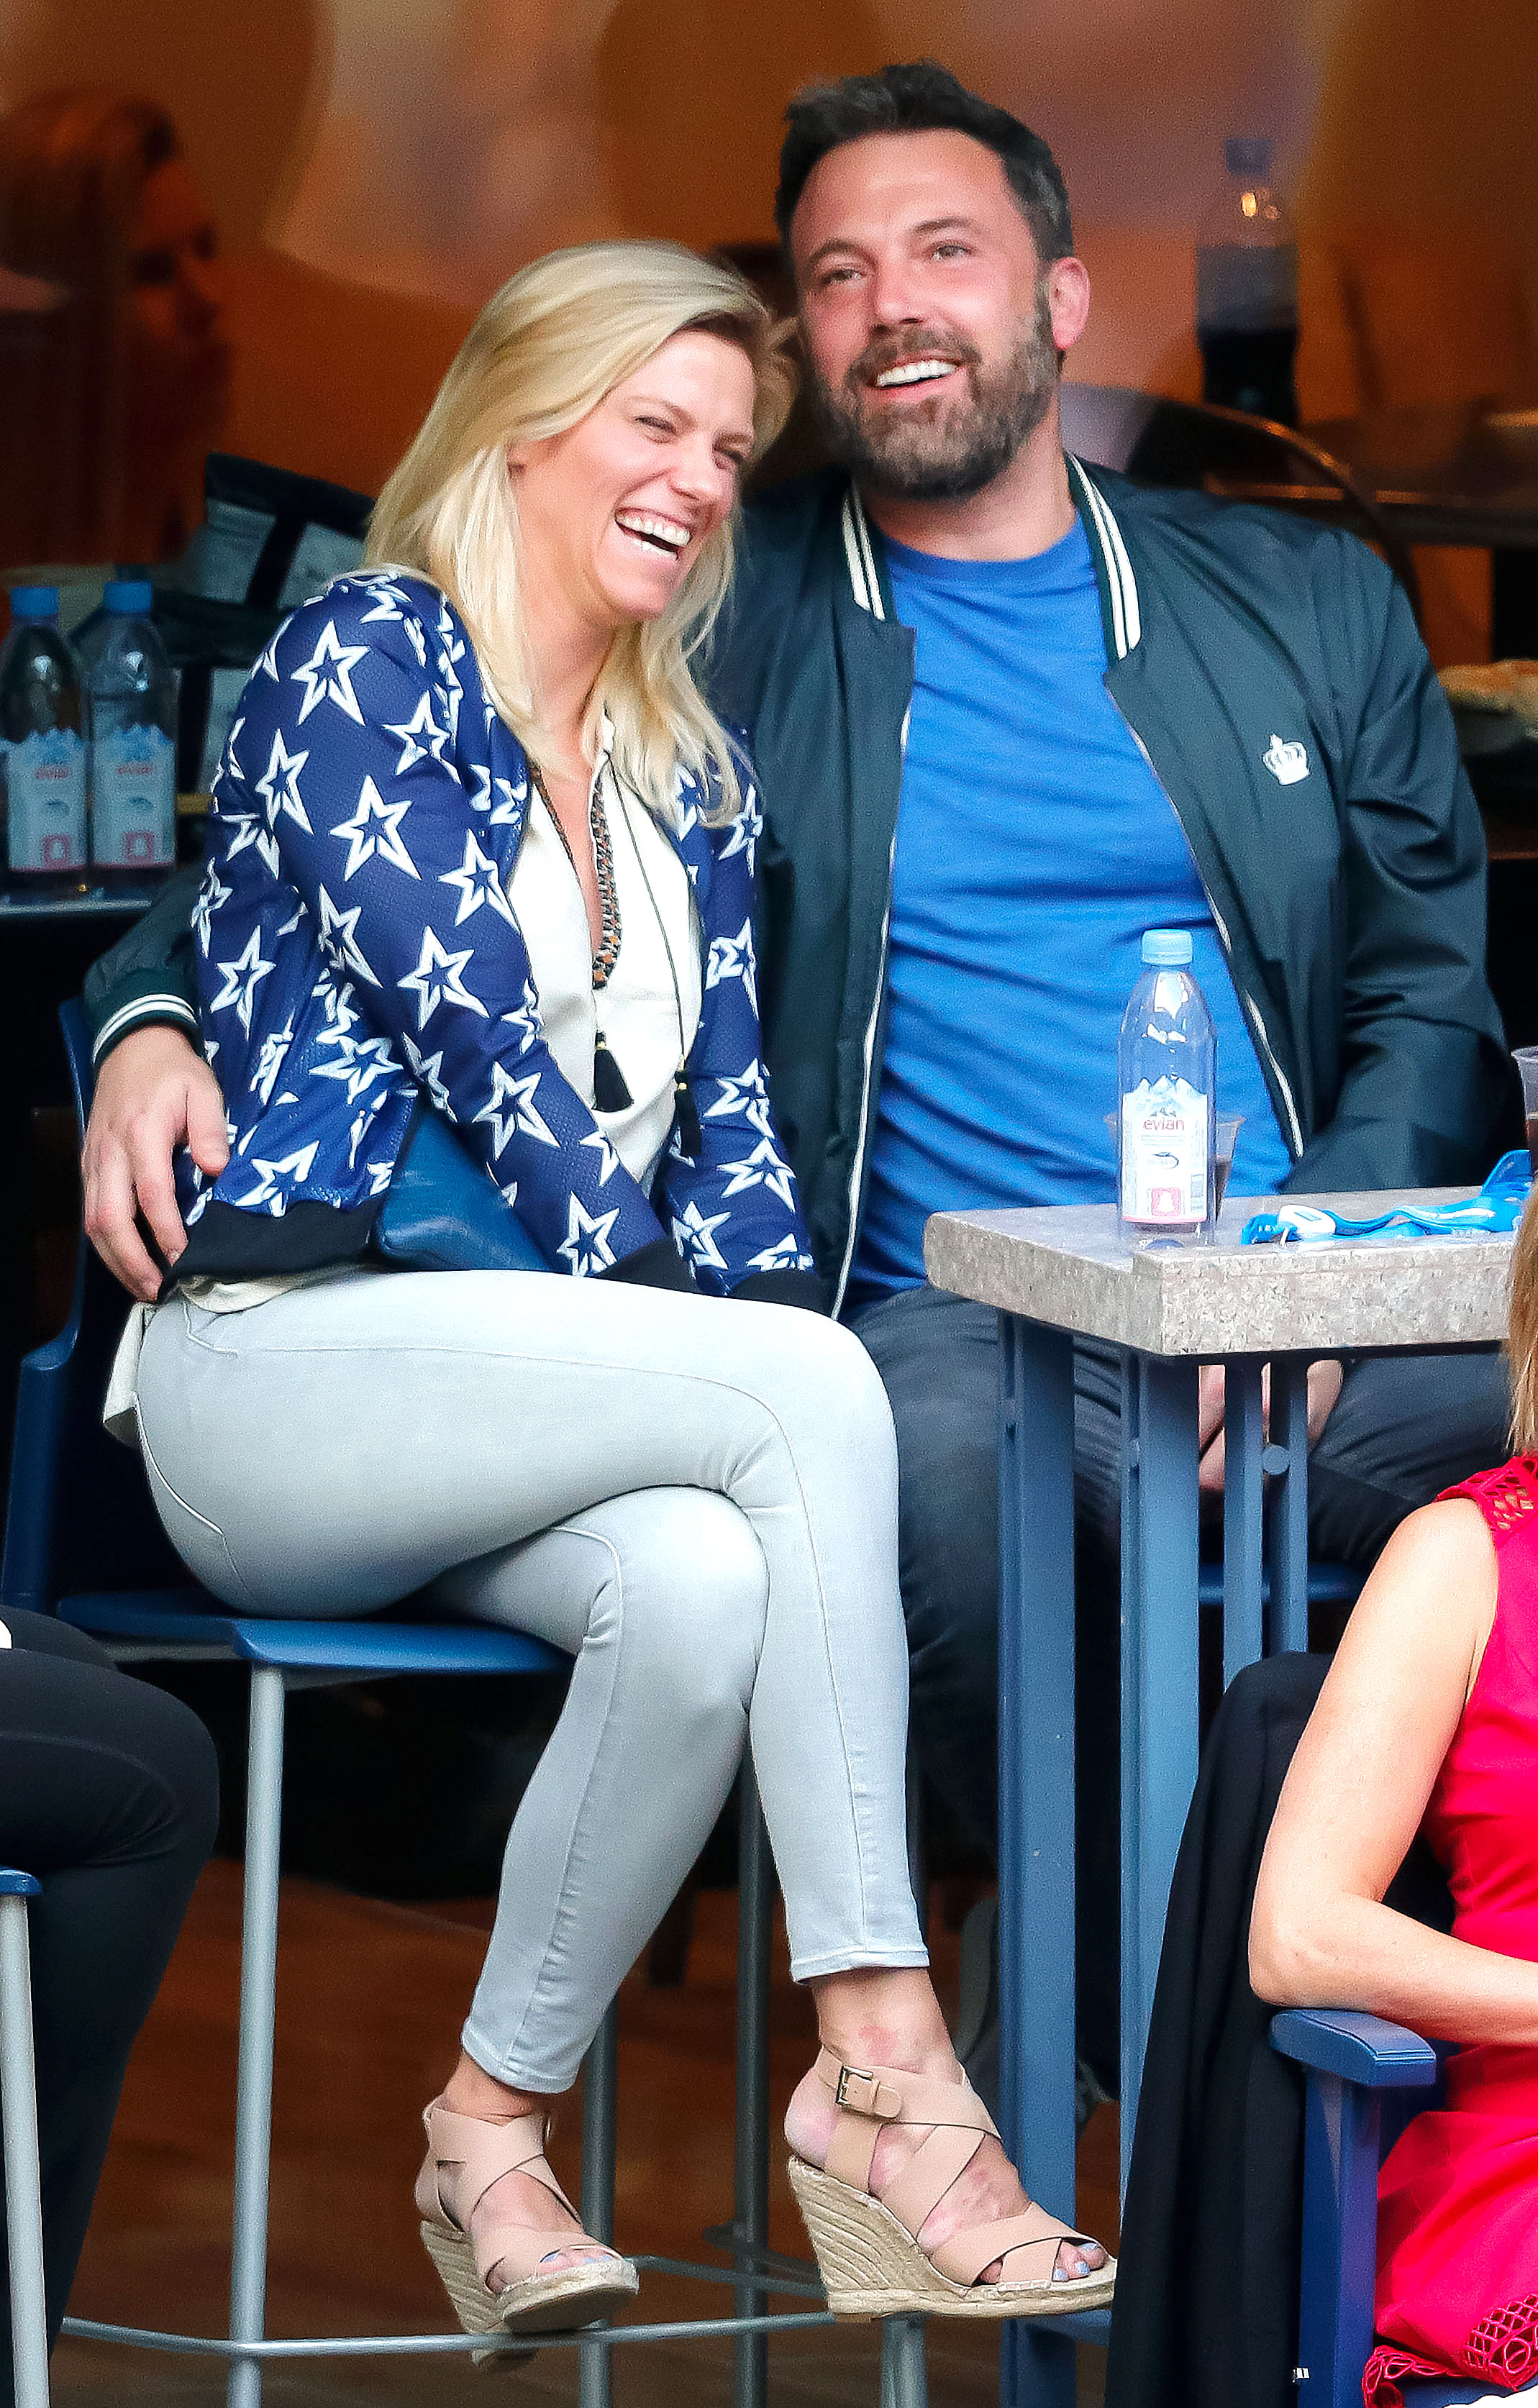 Lindsay Shookus 'Reached Out' to Ben Affleck: 'They've Been Talking' Again - Lindsay Shookus and Ben Affleck attend the 2017 US Open Tennis Championships at Arthur Ashe Stadium on September 10, 2017 in New York City.